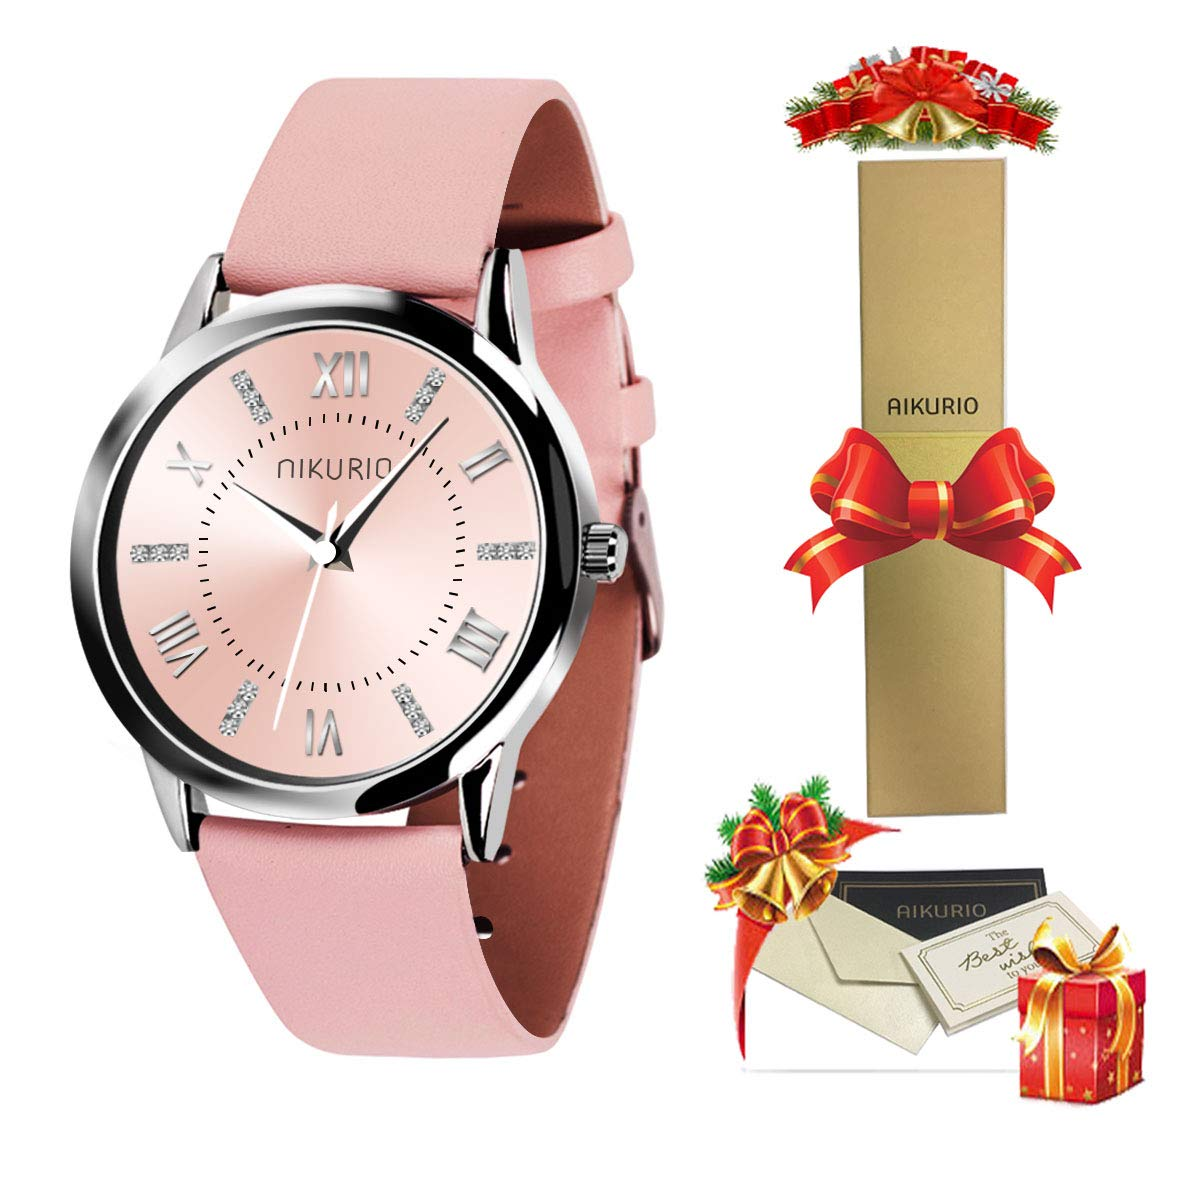 40% OFF AIKURIO Women's Wrist Watch with Leather Strap and Crystal Dial 30M Waterproof AKR001